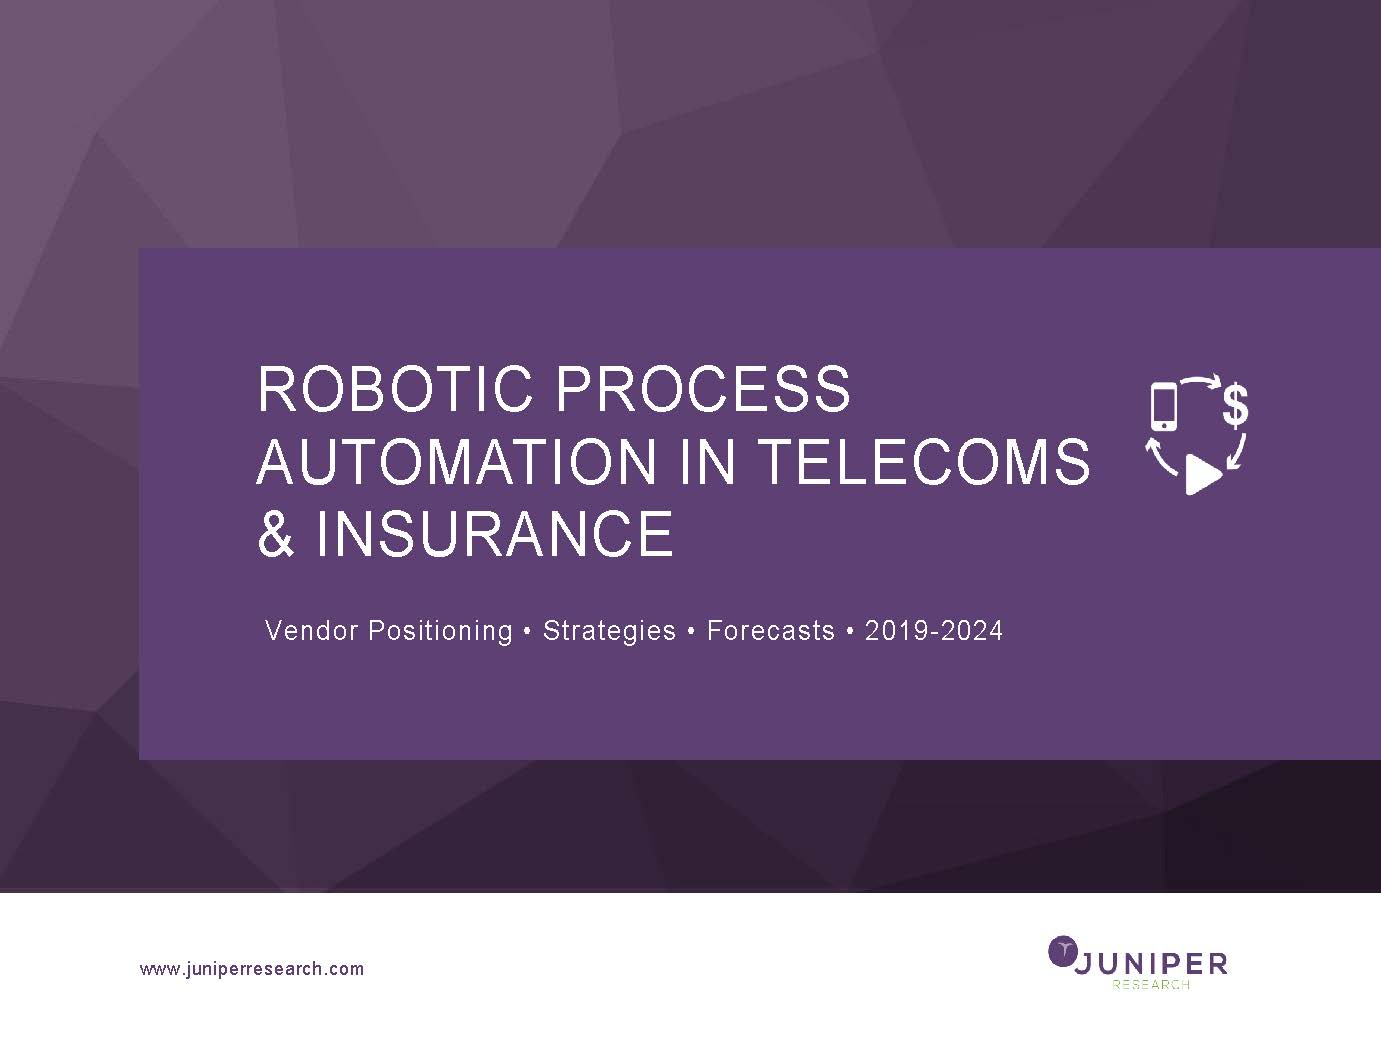 Robotic Process Automation in Telecoms & Insurance